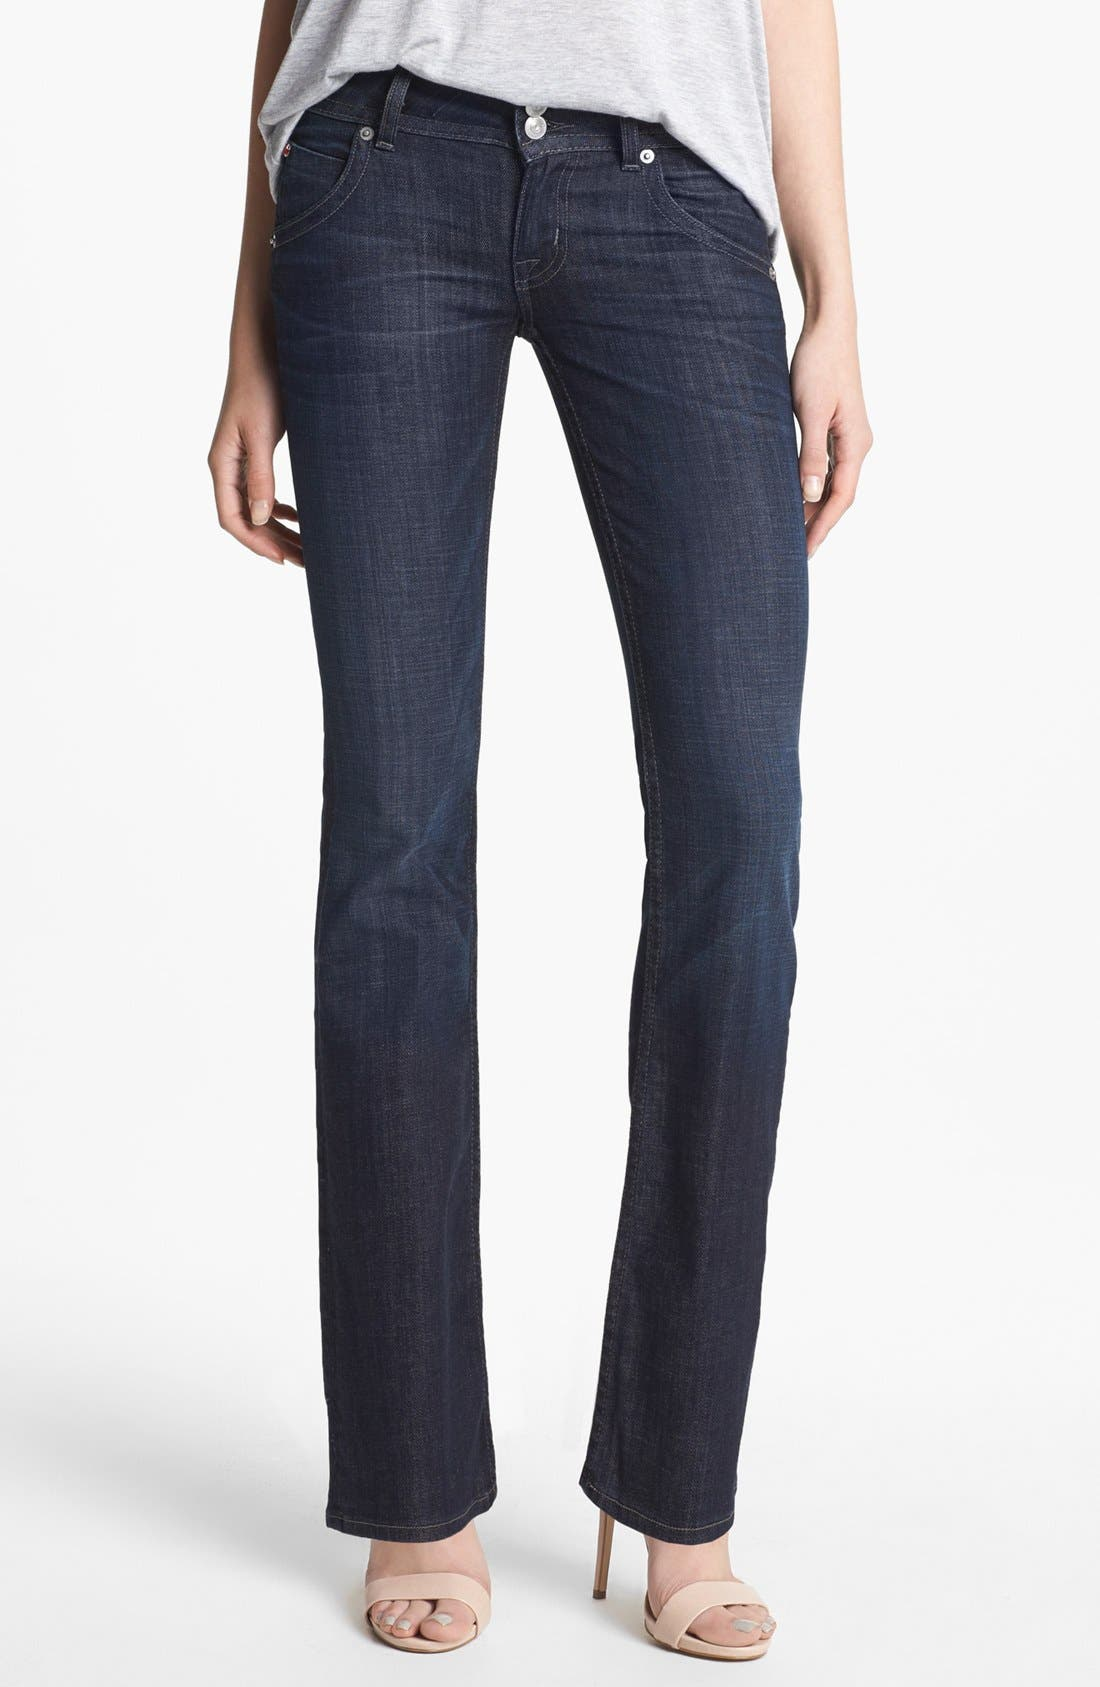 Alternate Image 1 Selected - Hudson Jeans Signature Bootcut Stretch Jeans (Savage) (Petite)